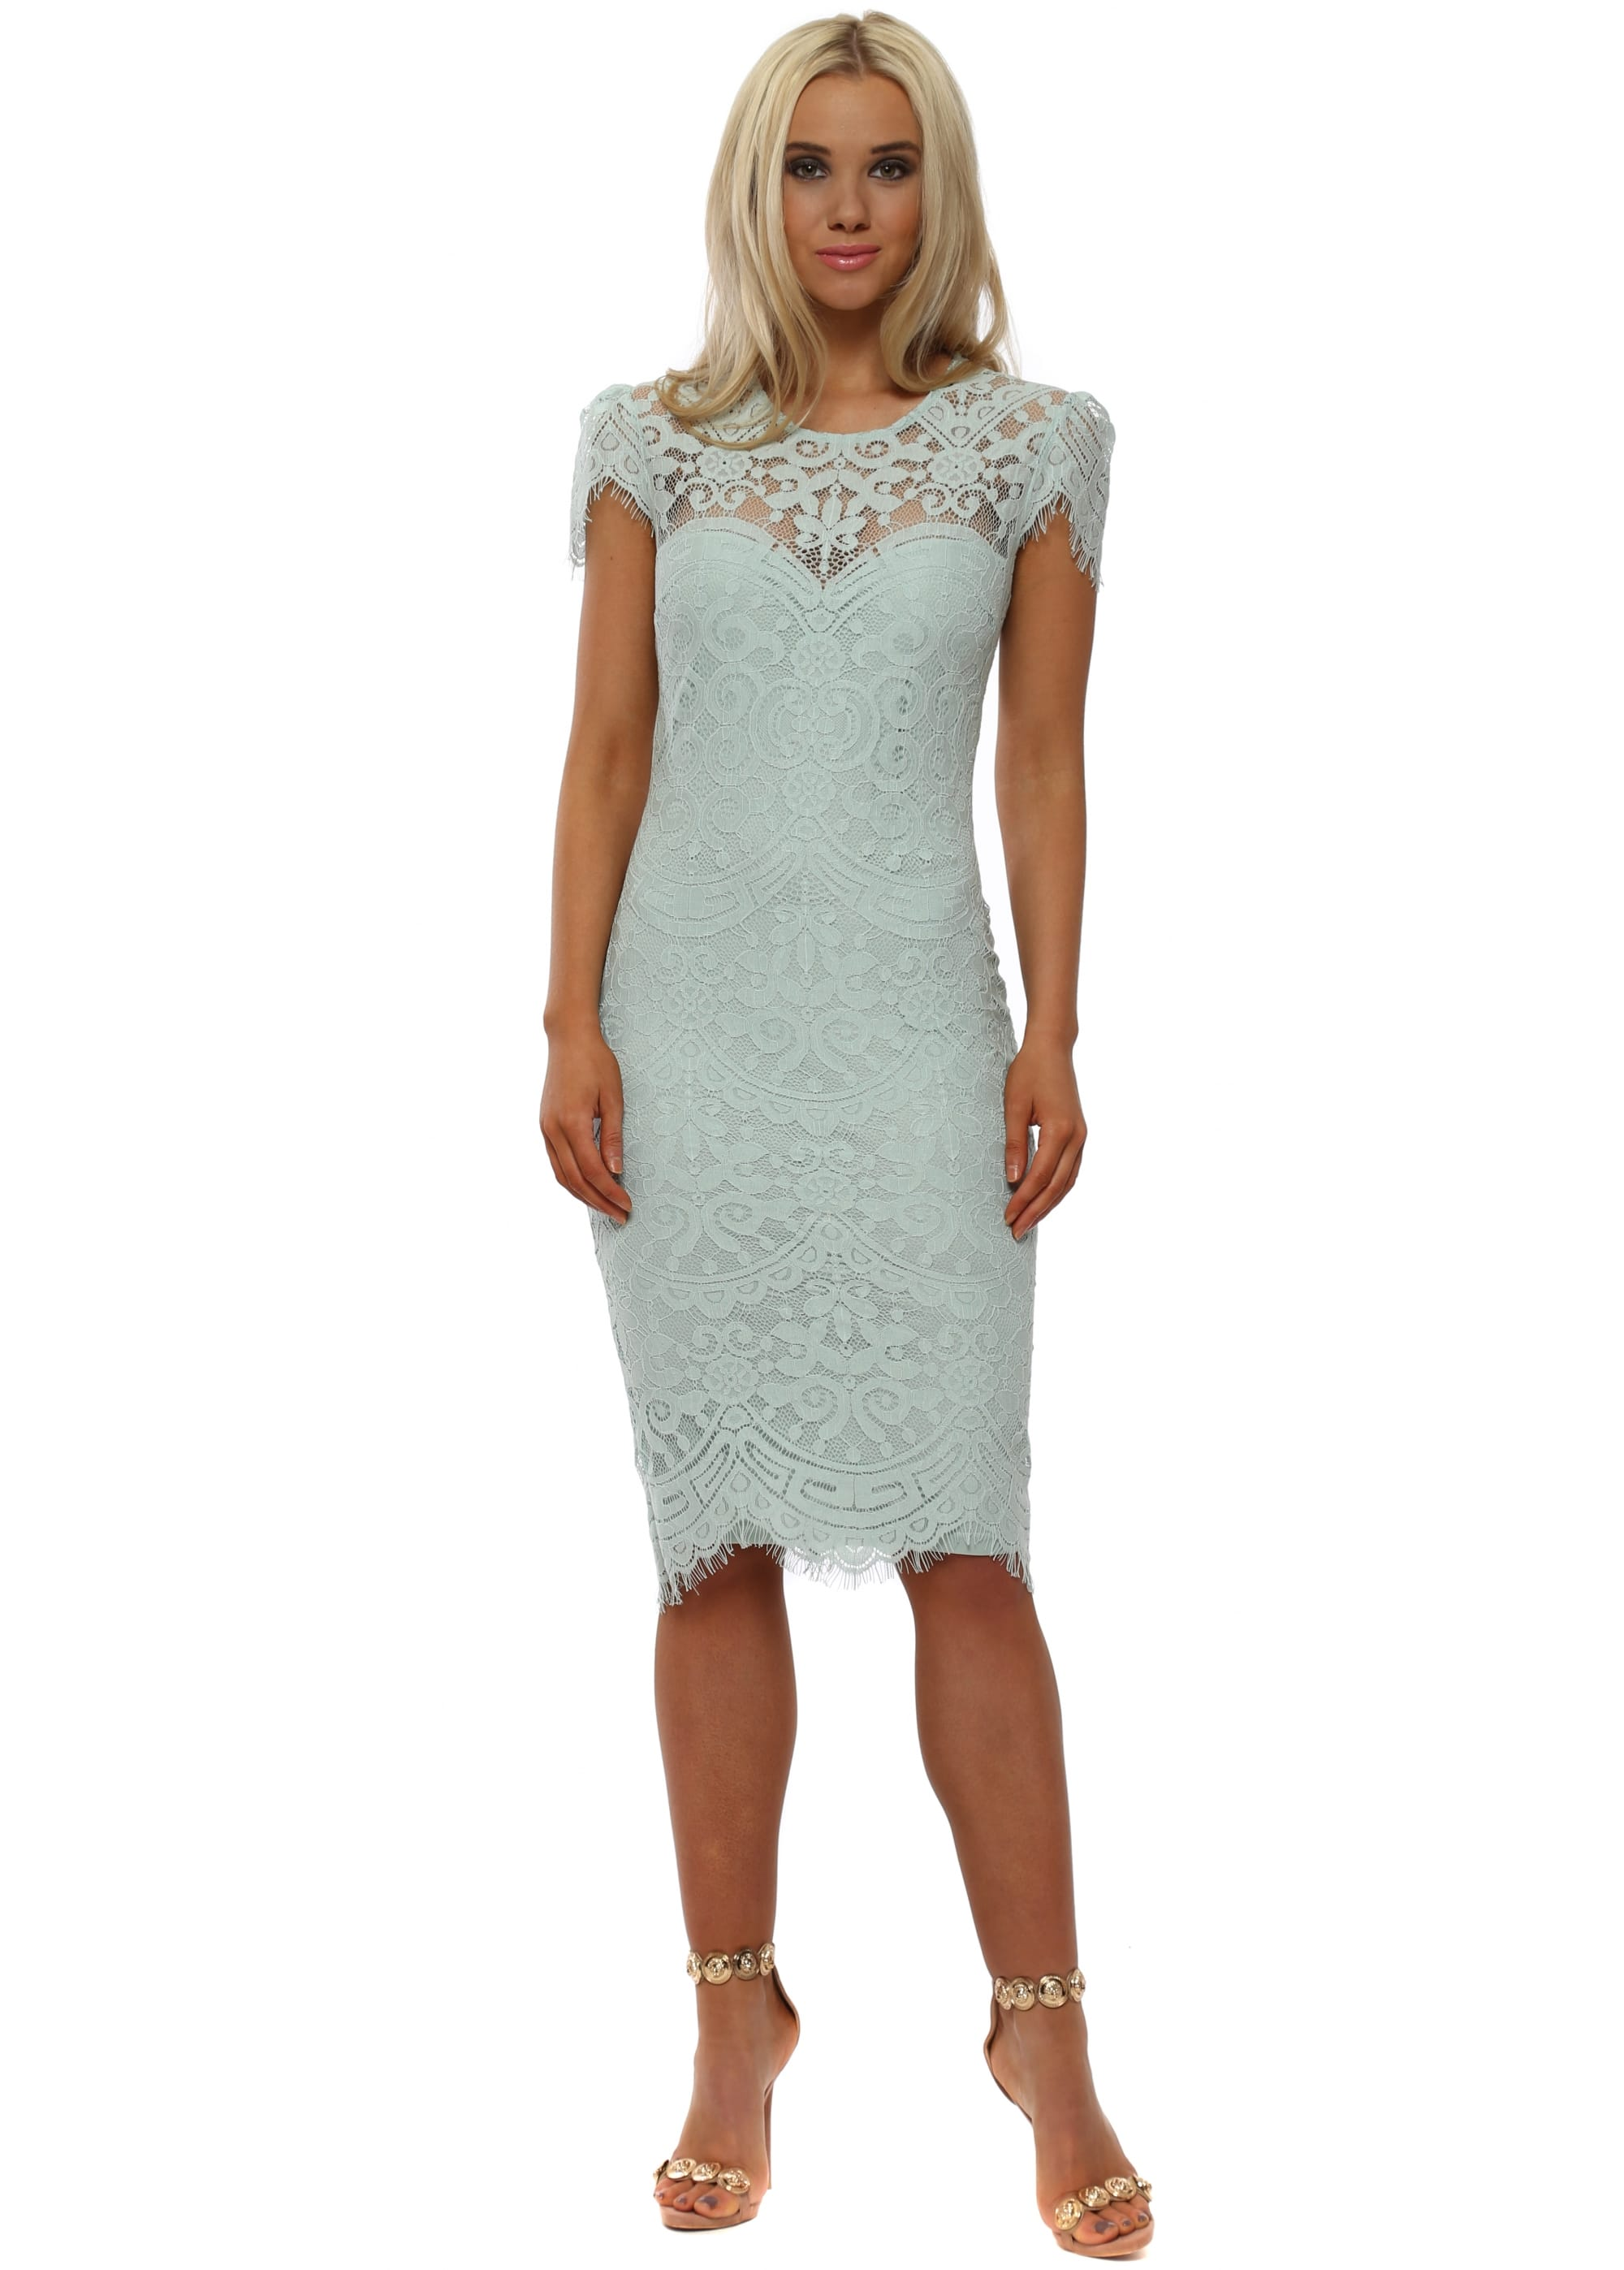 a1ac49abd1d768 Goddess London Duck Egg Blue Lace Midi Dress